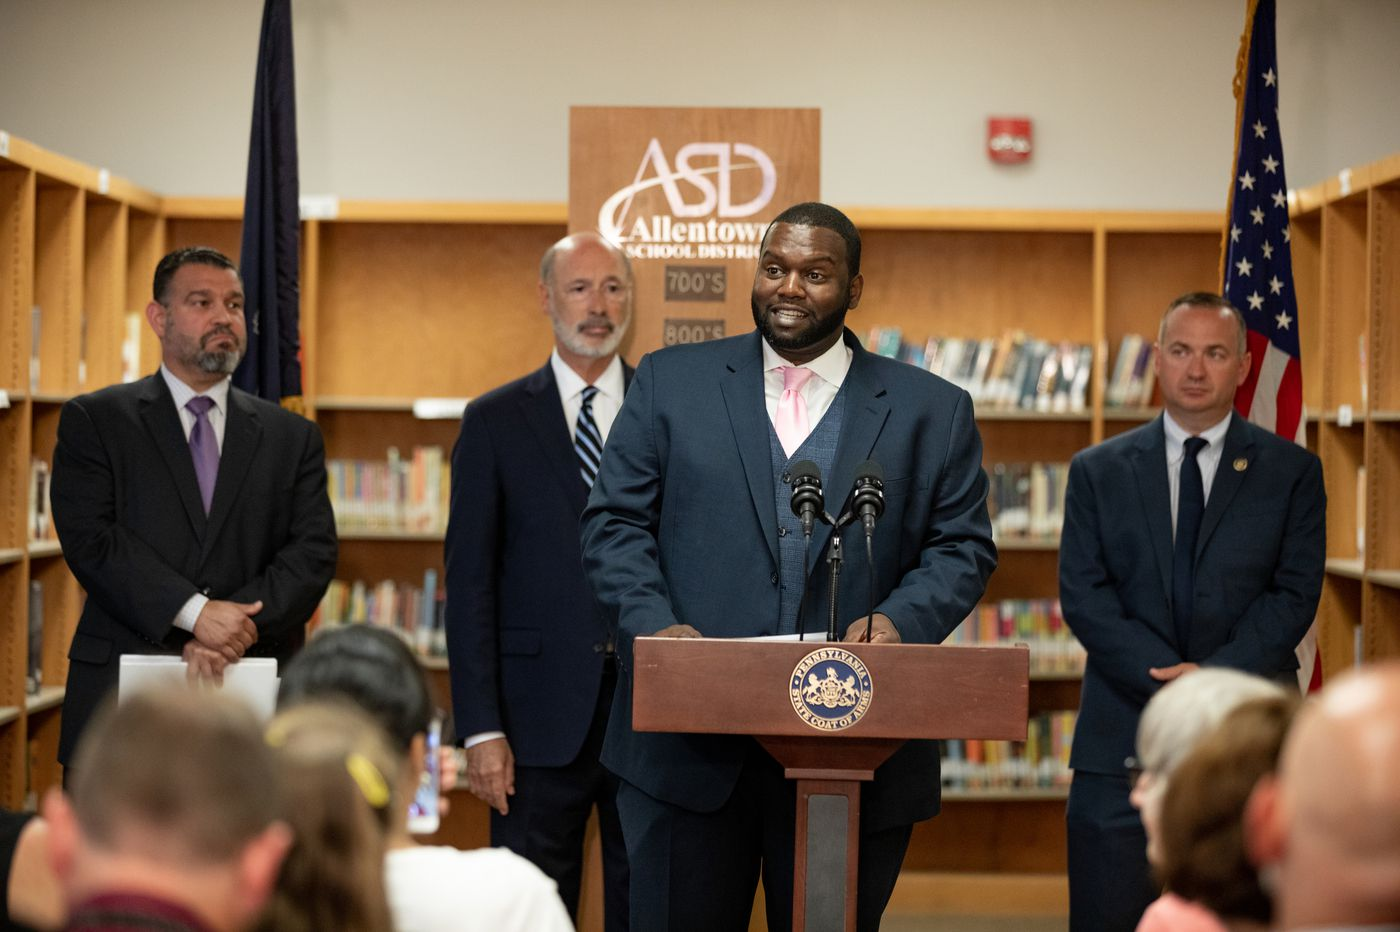 Allentown School District wants to cut charter costs to fill budget hole